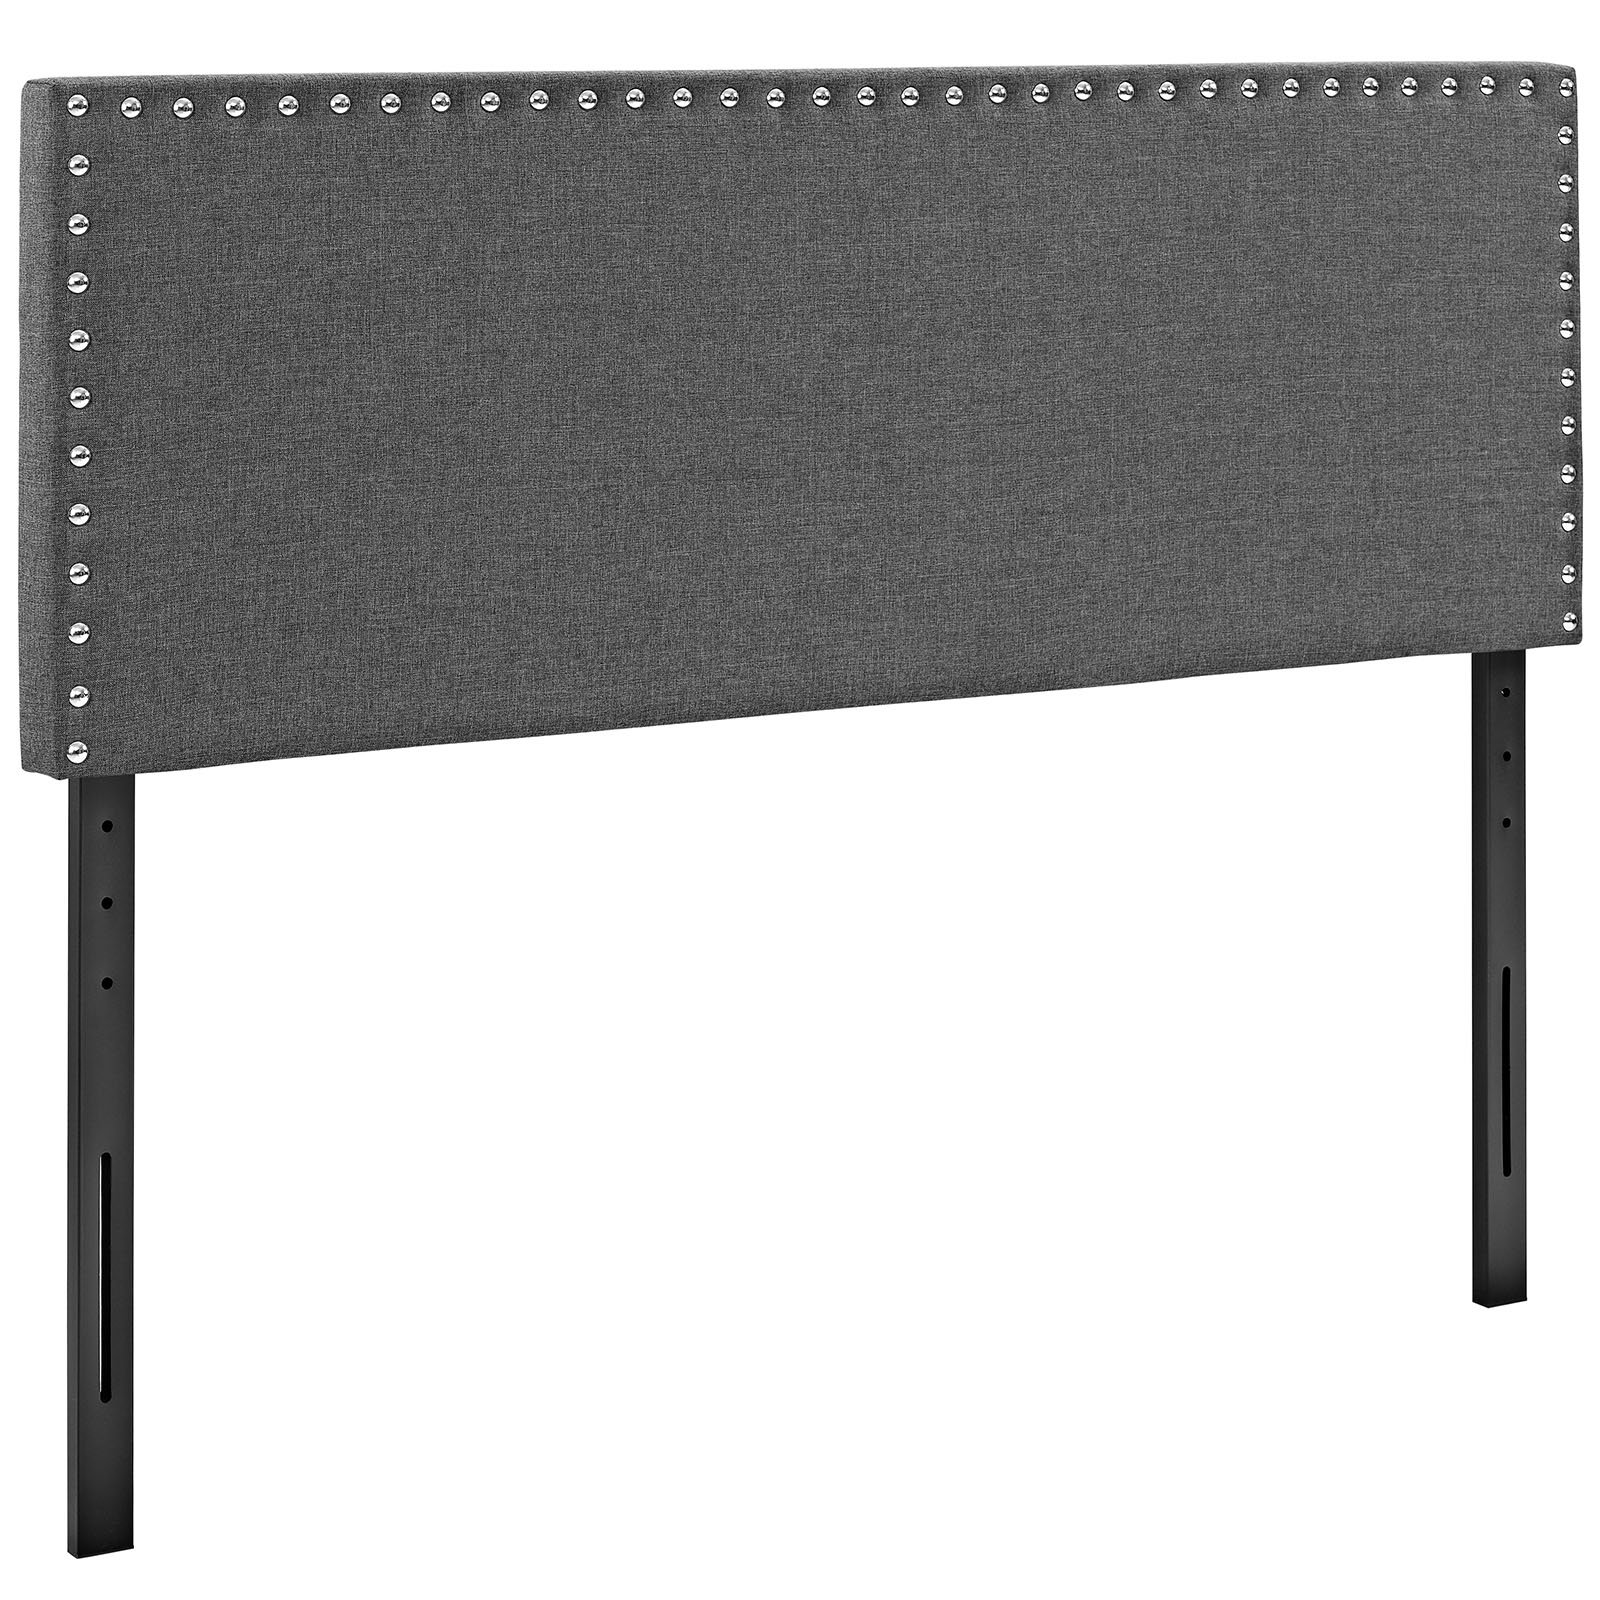 Modway Phoebe Fabric Upholstered Queen Size Headboard With Nailhead Trim in Gray